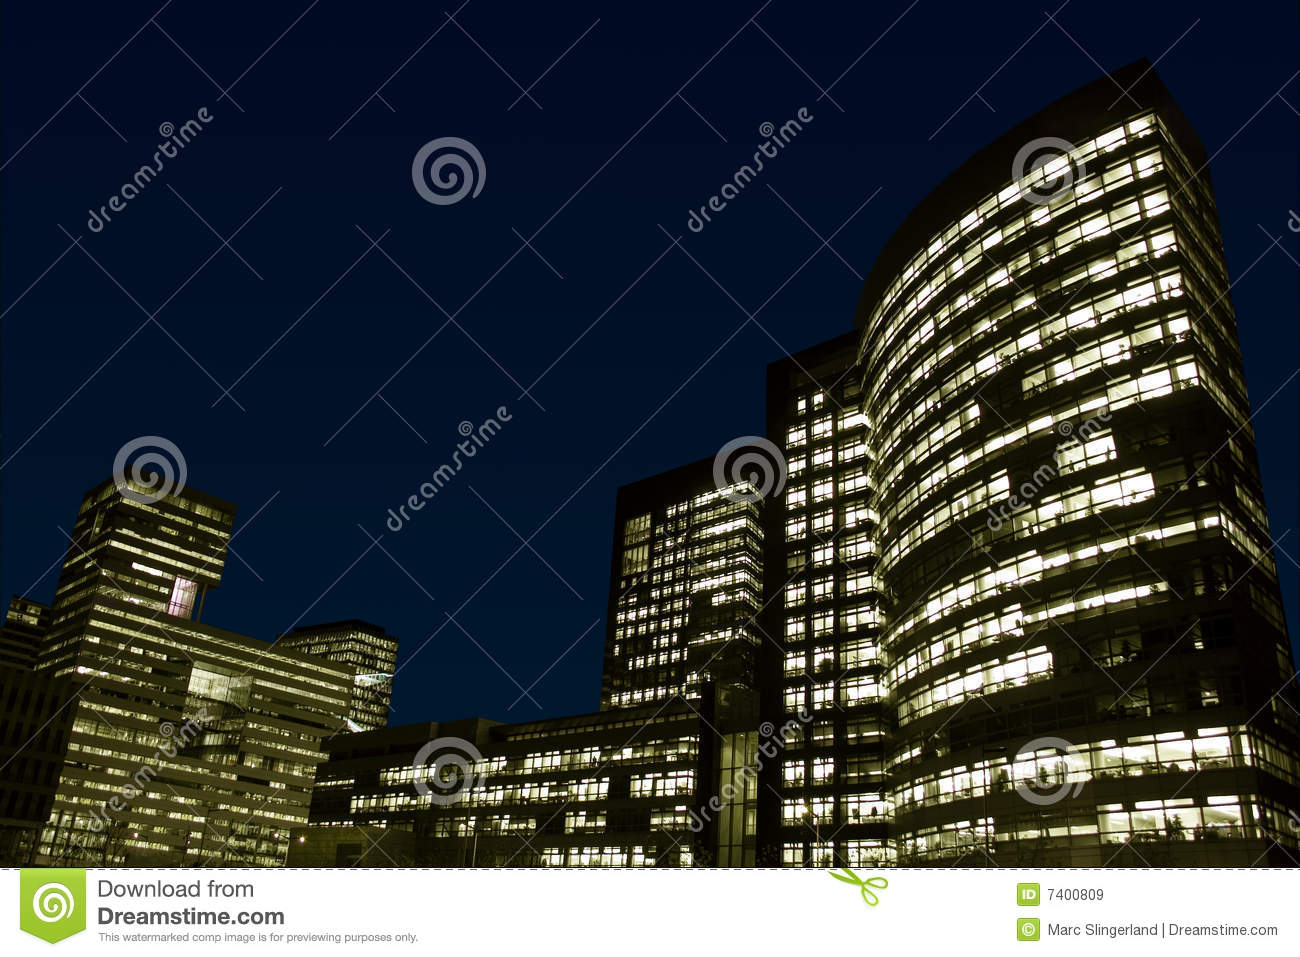 Office buildings at night.